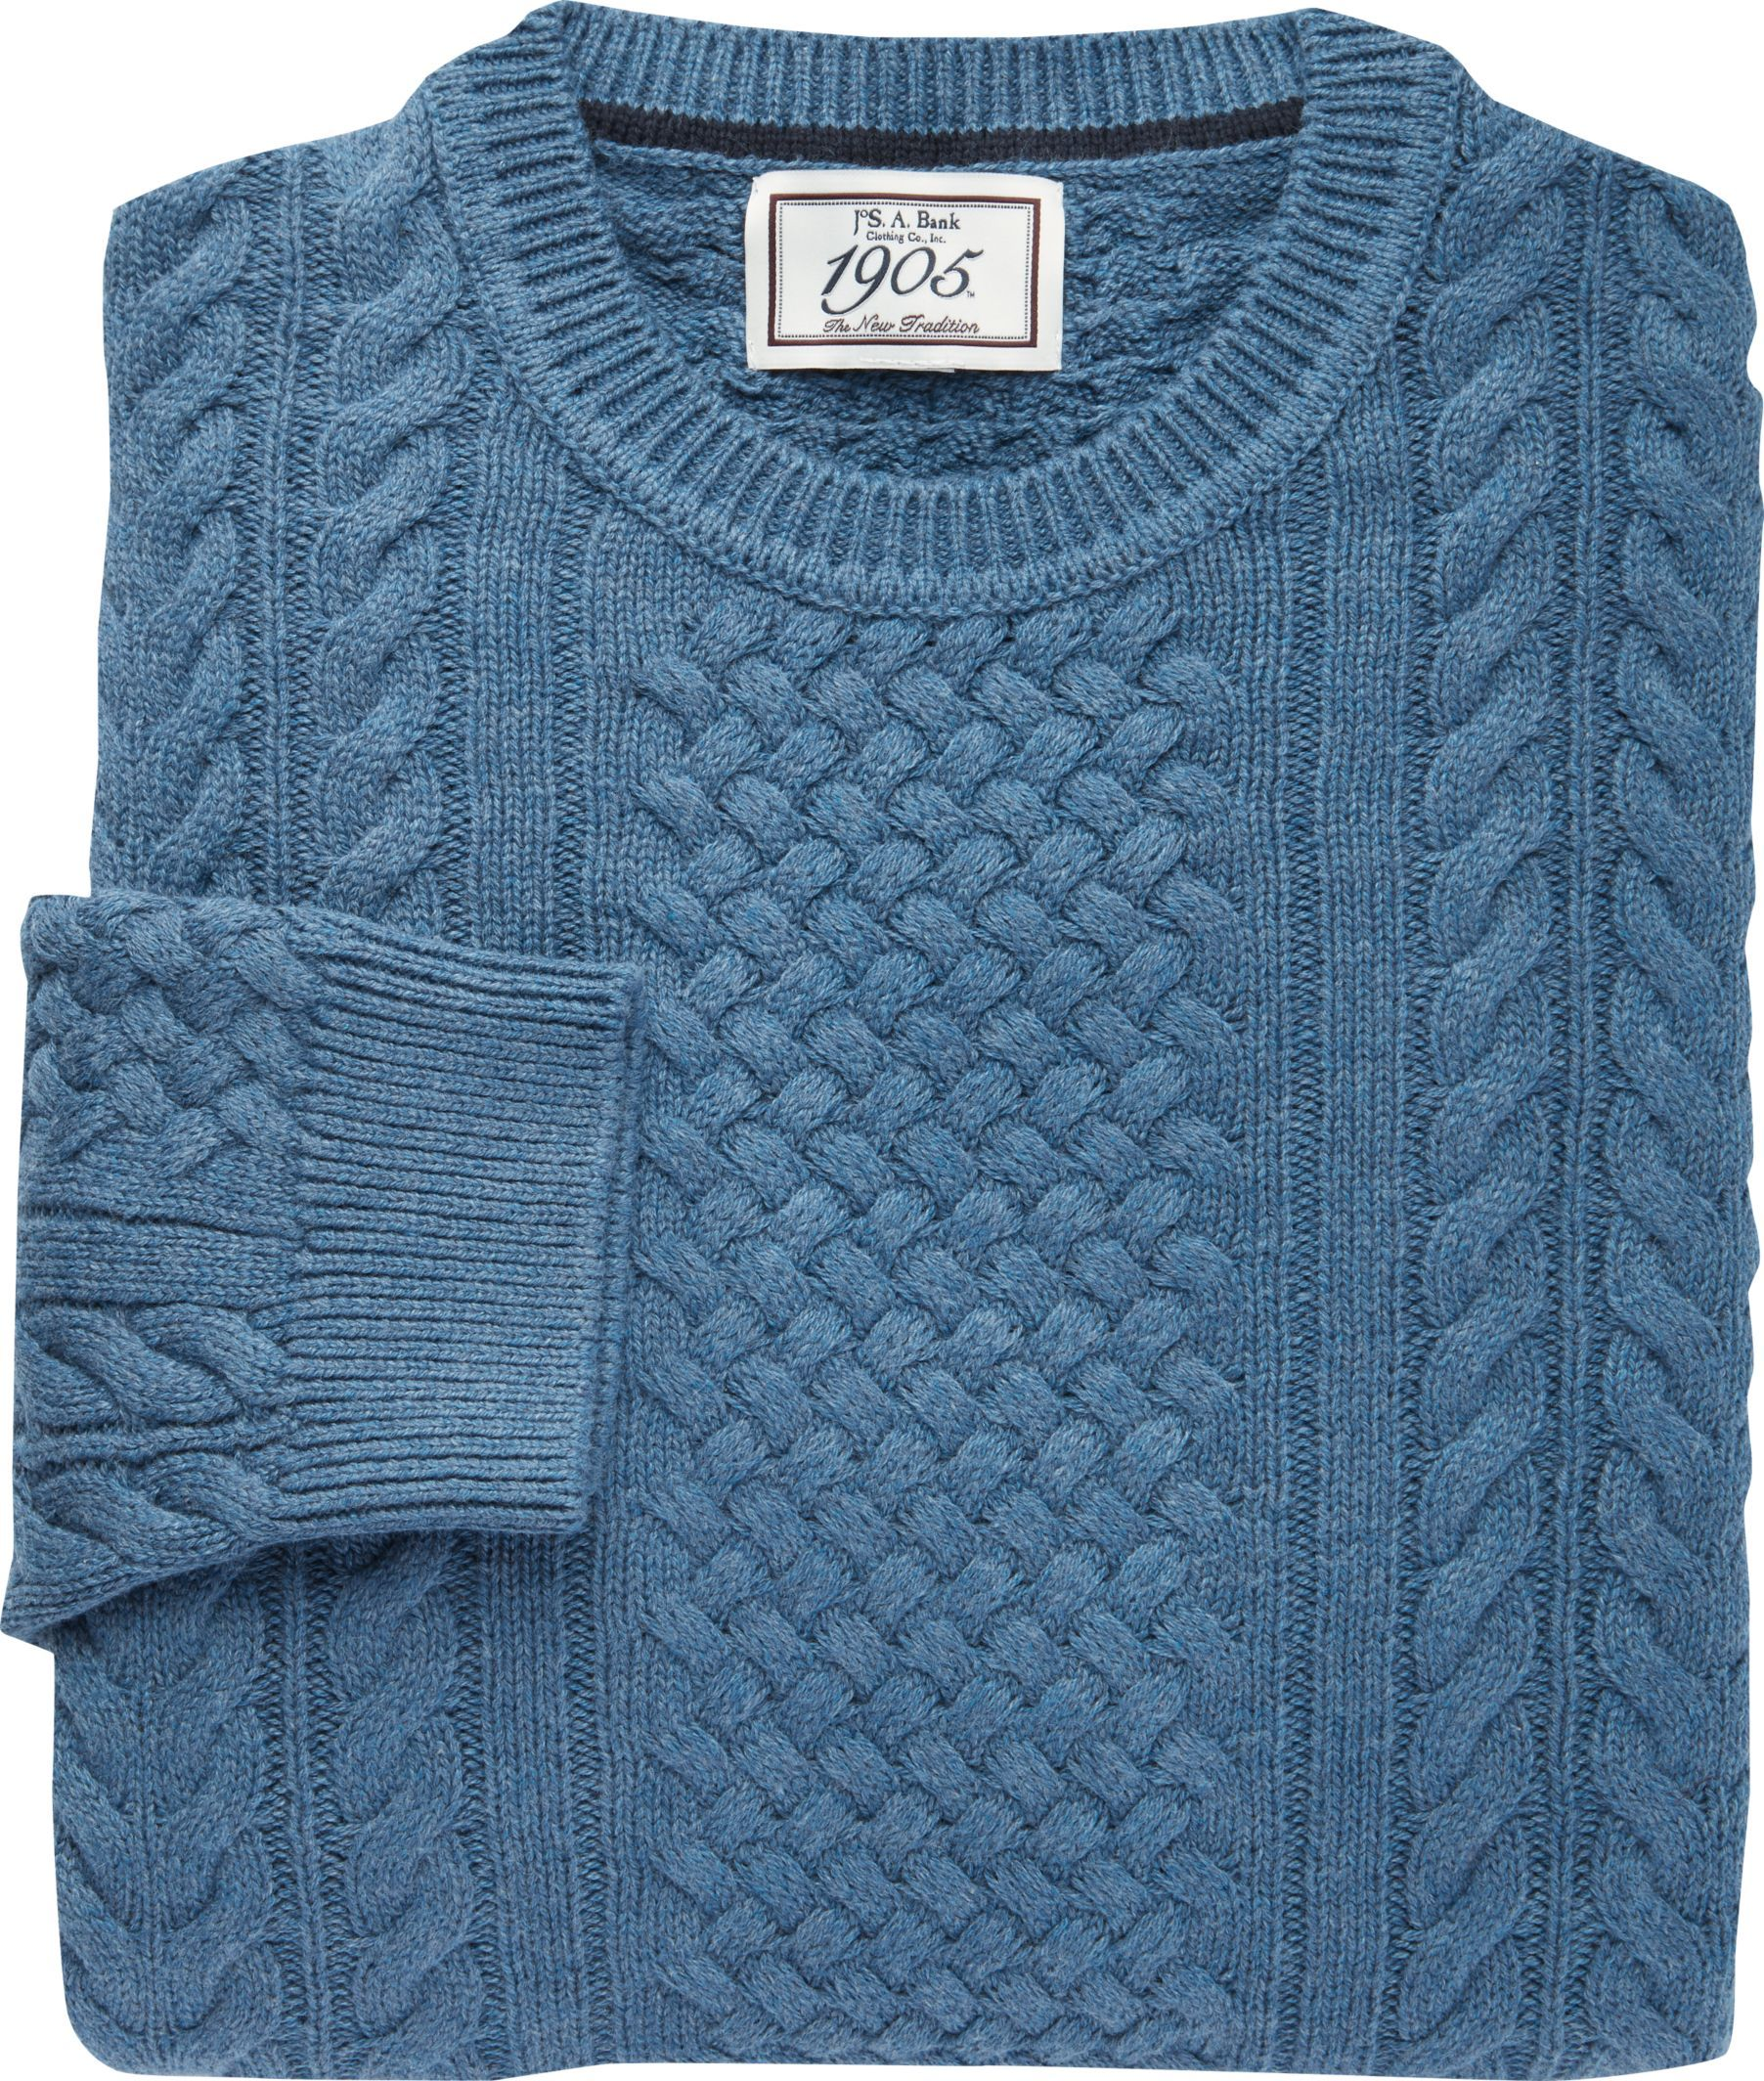 9b004195152ae1 Home   Products   Cable knit sweaters, Cable Knit, Sweaters